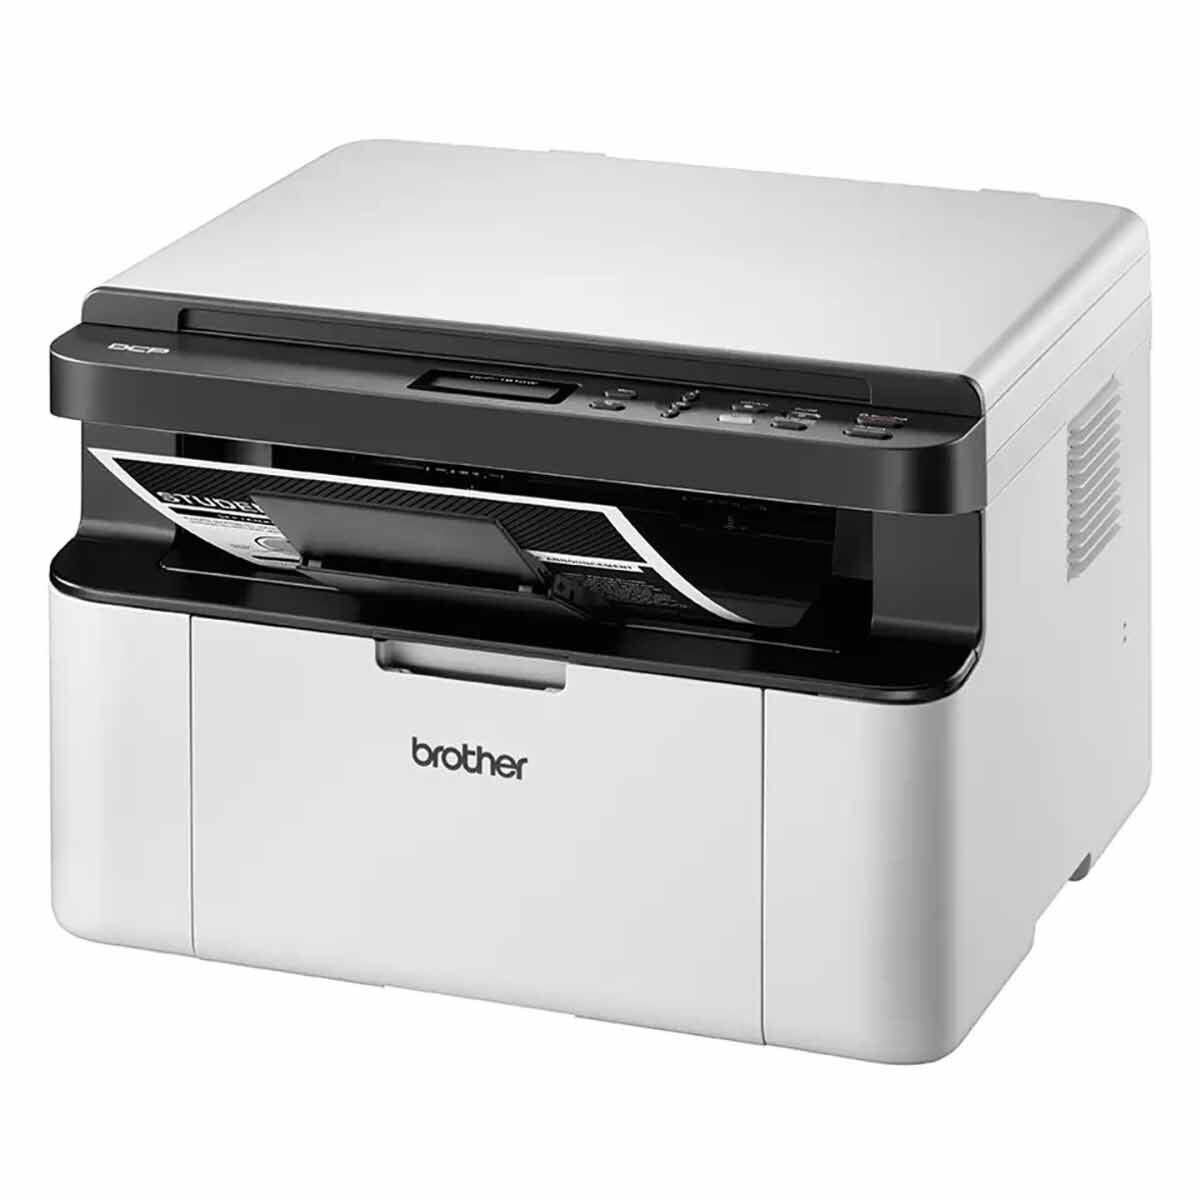 Brother DCP1610W Mono Laser 3-in-1 Printer Bundle